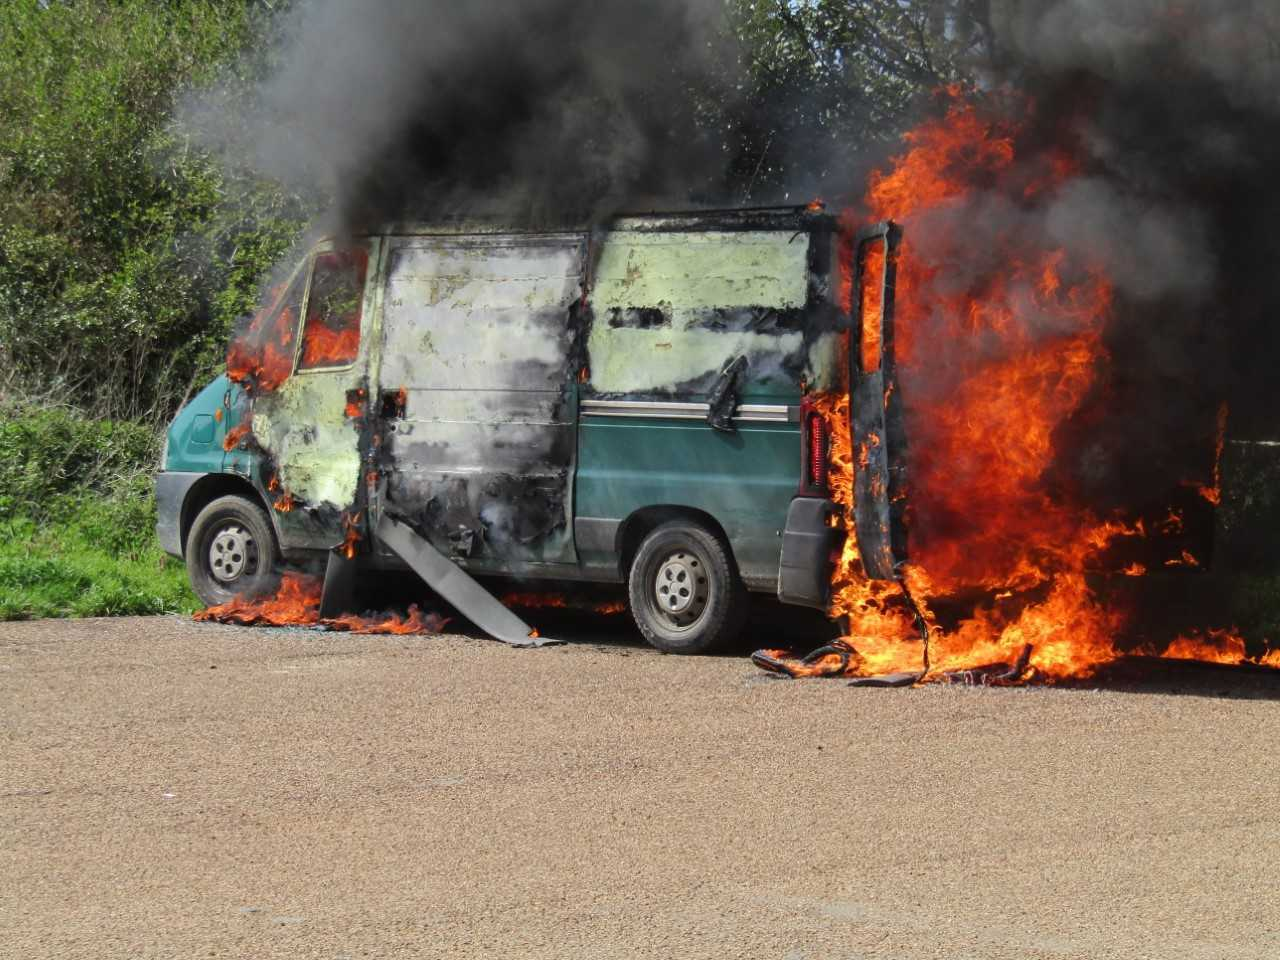 The van on fire in Freshwater. Photo by Phillip Hall.